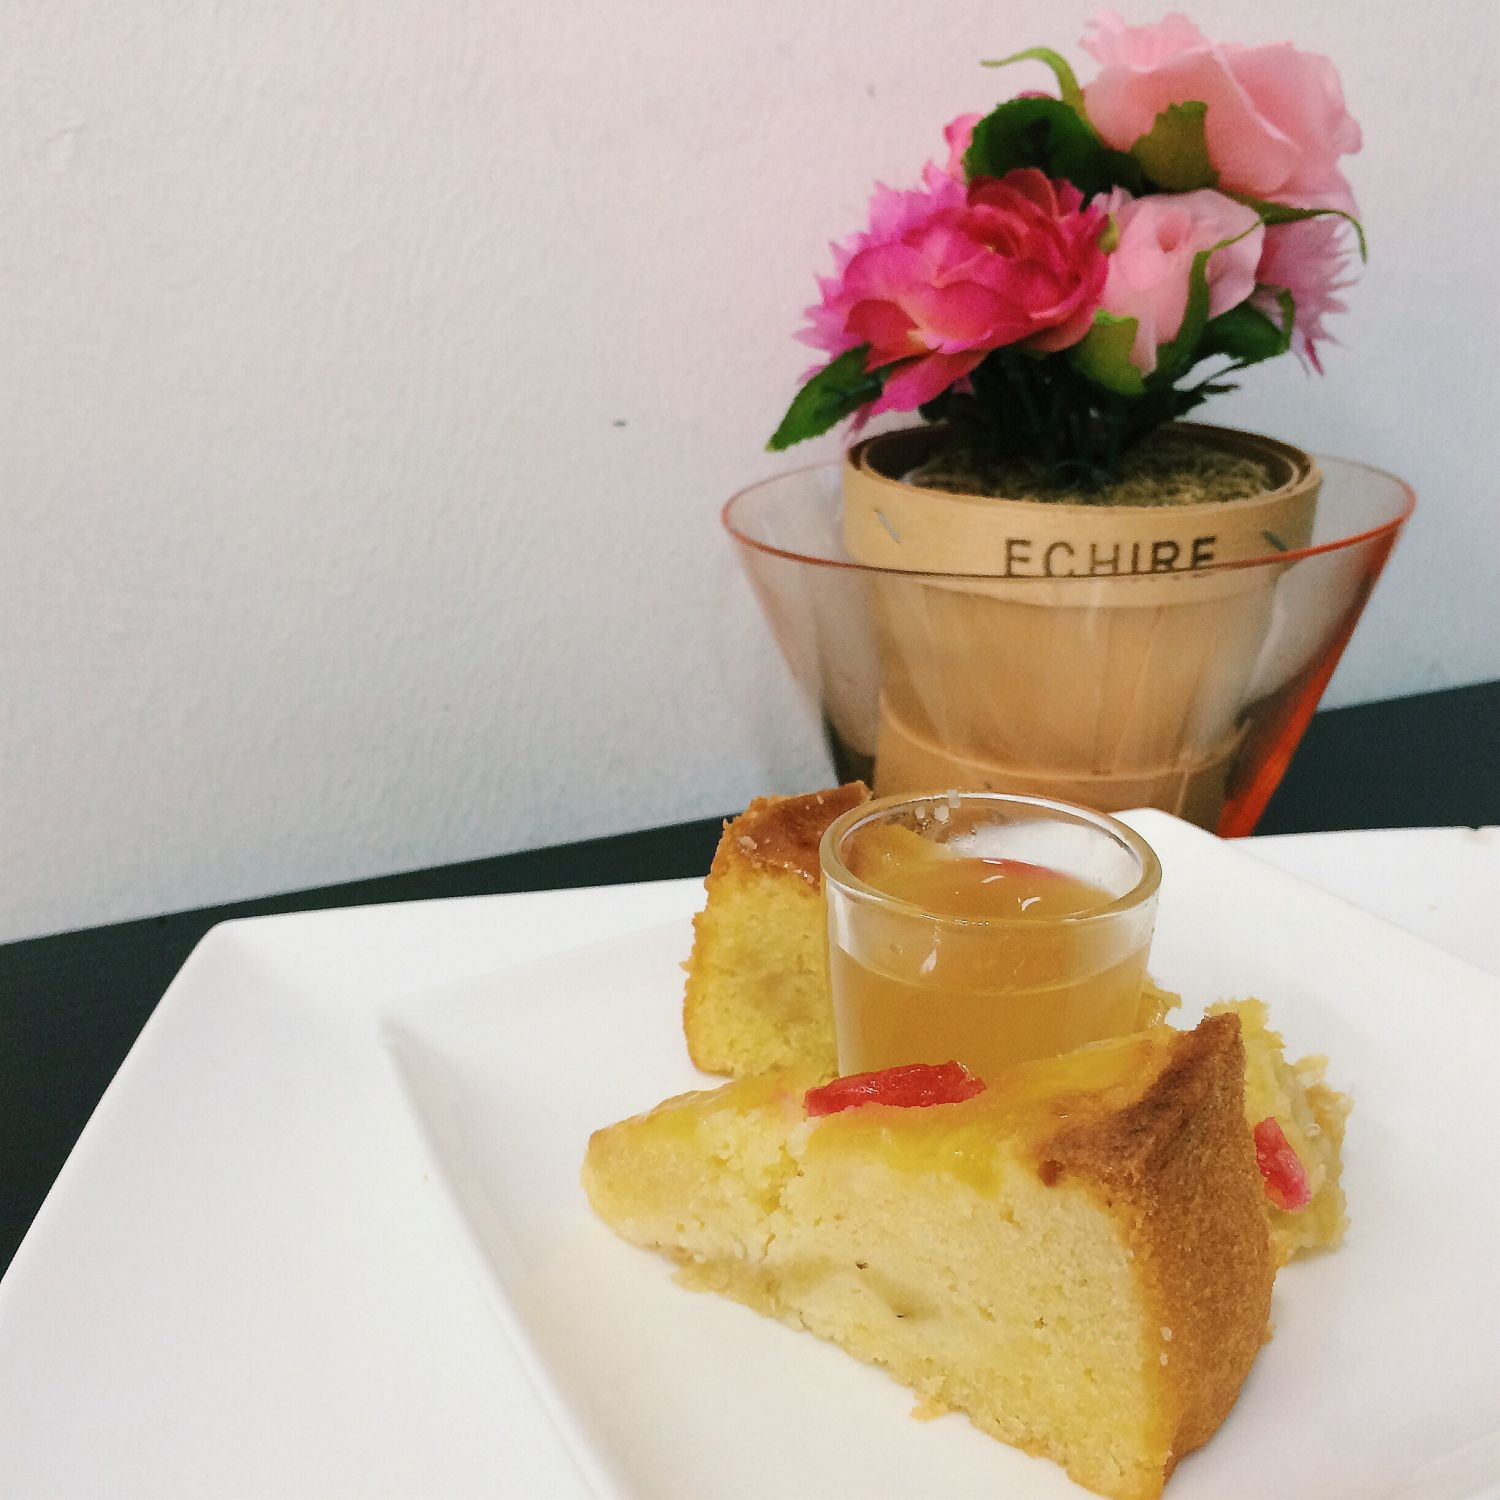 Pineapple Pound Cake with Fruit Enzyme - Gobi Desserts